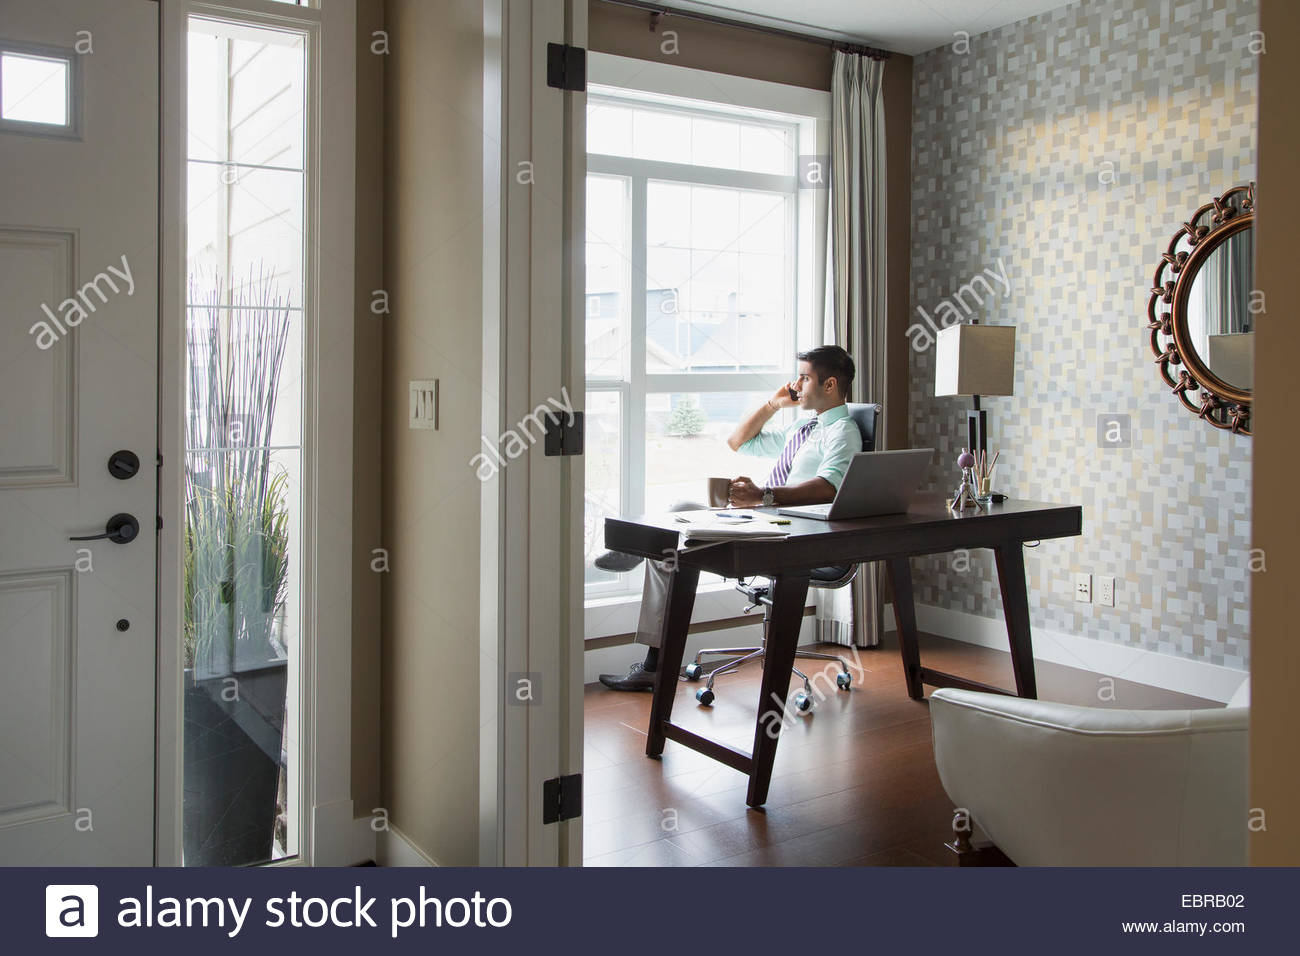 Man talking on cell phone in home office Photo Stock